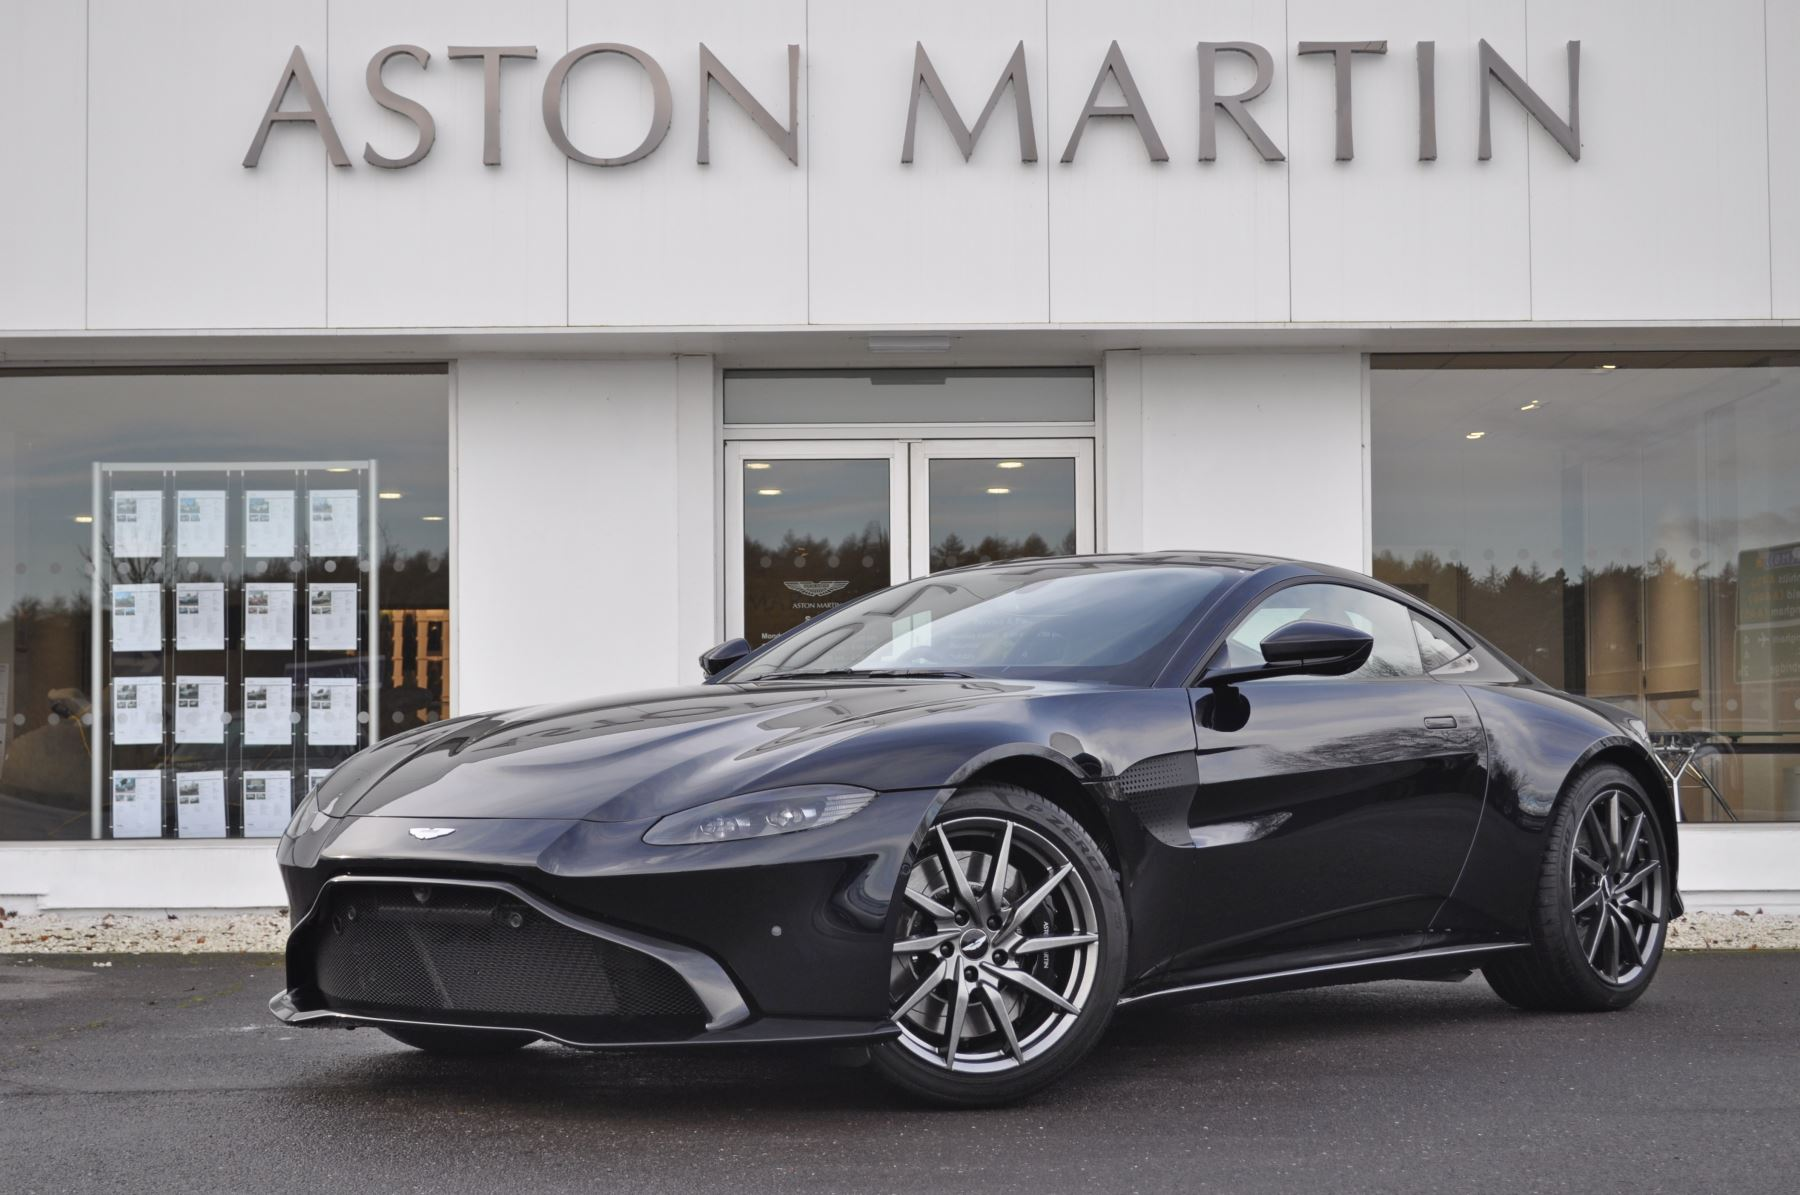 Aston Martin New Vantage 2dr ZF 8 Speed 4.0 Automatic 3 door Coupe (2019.5) image